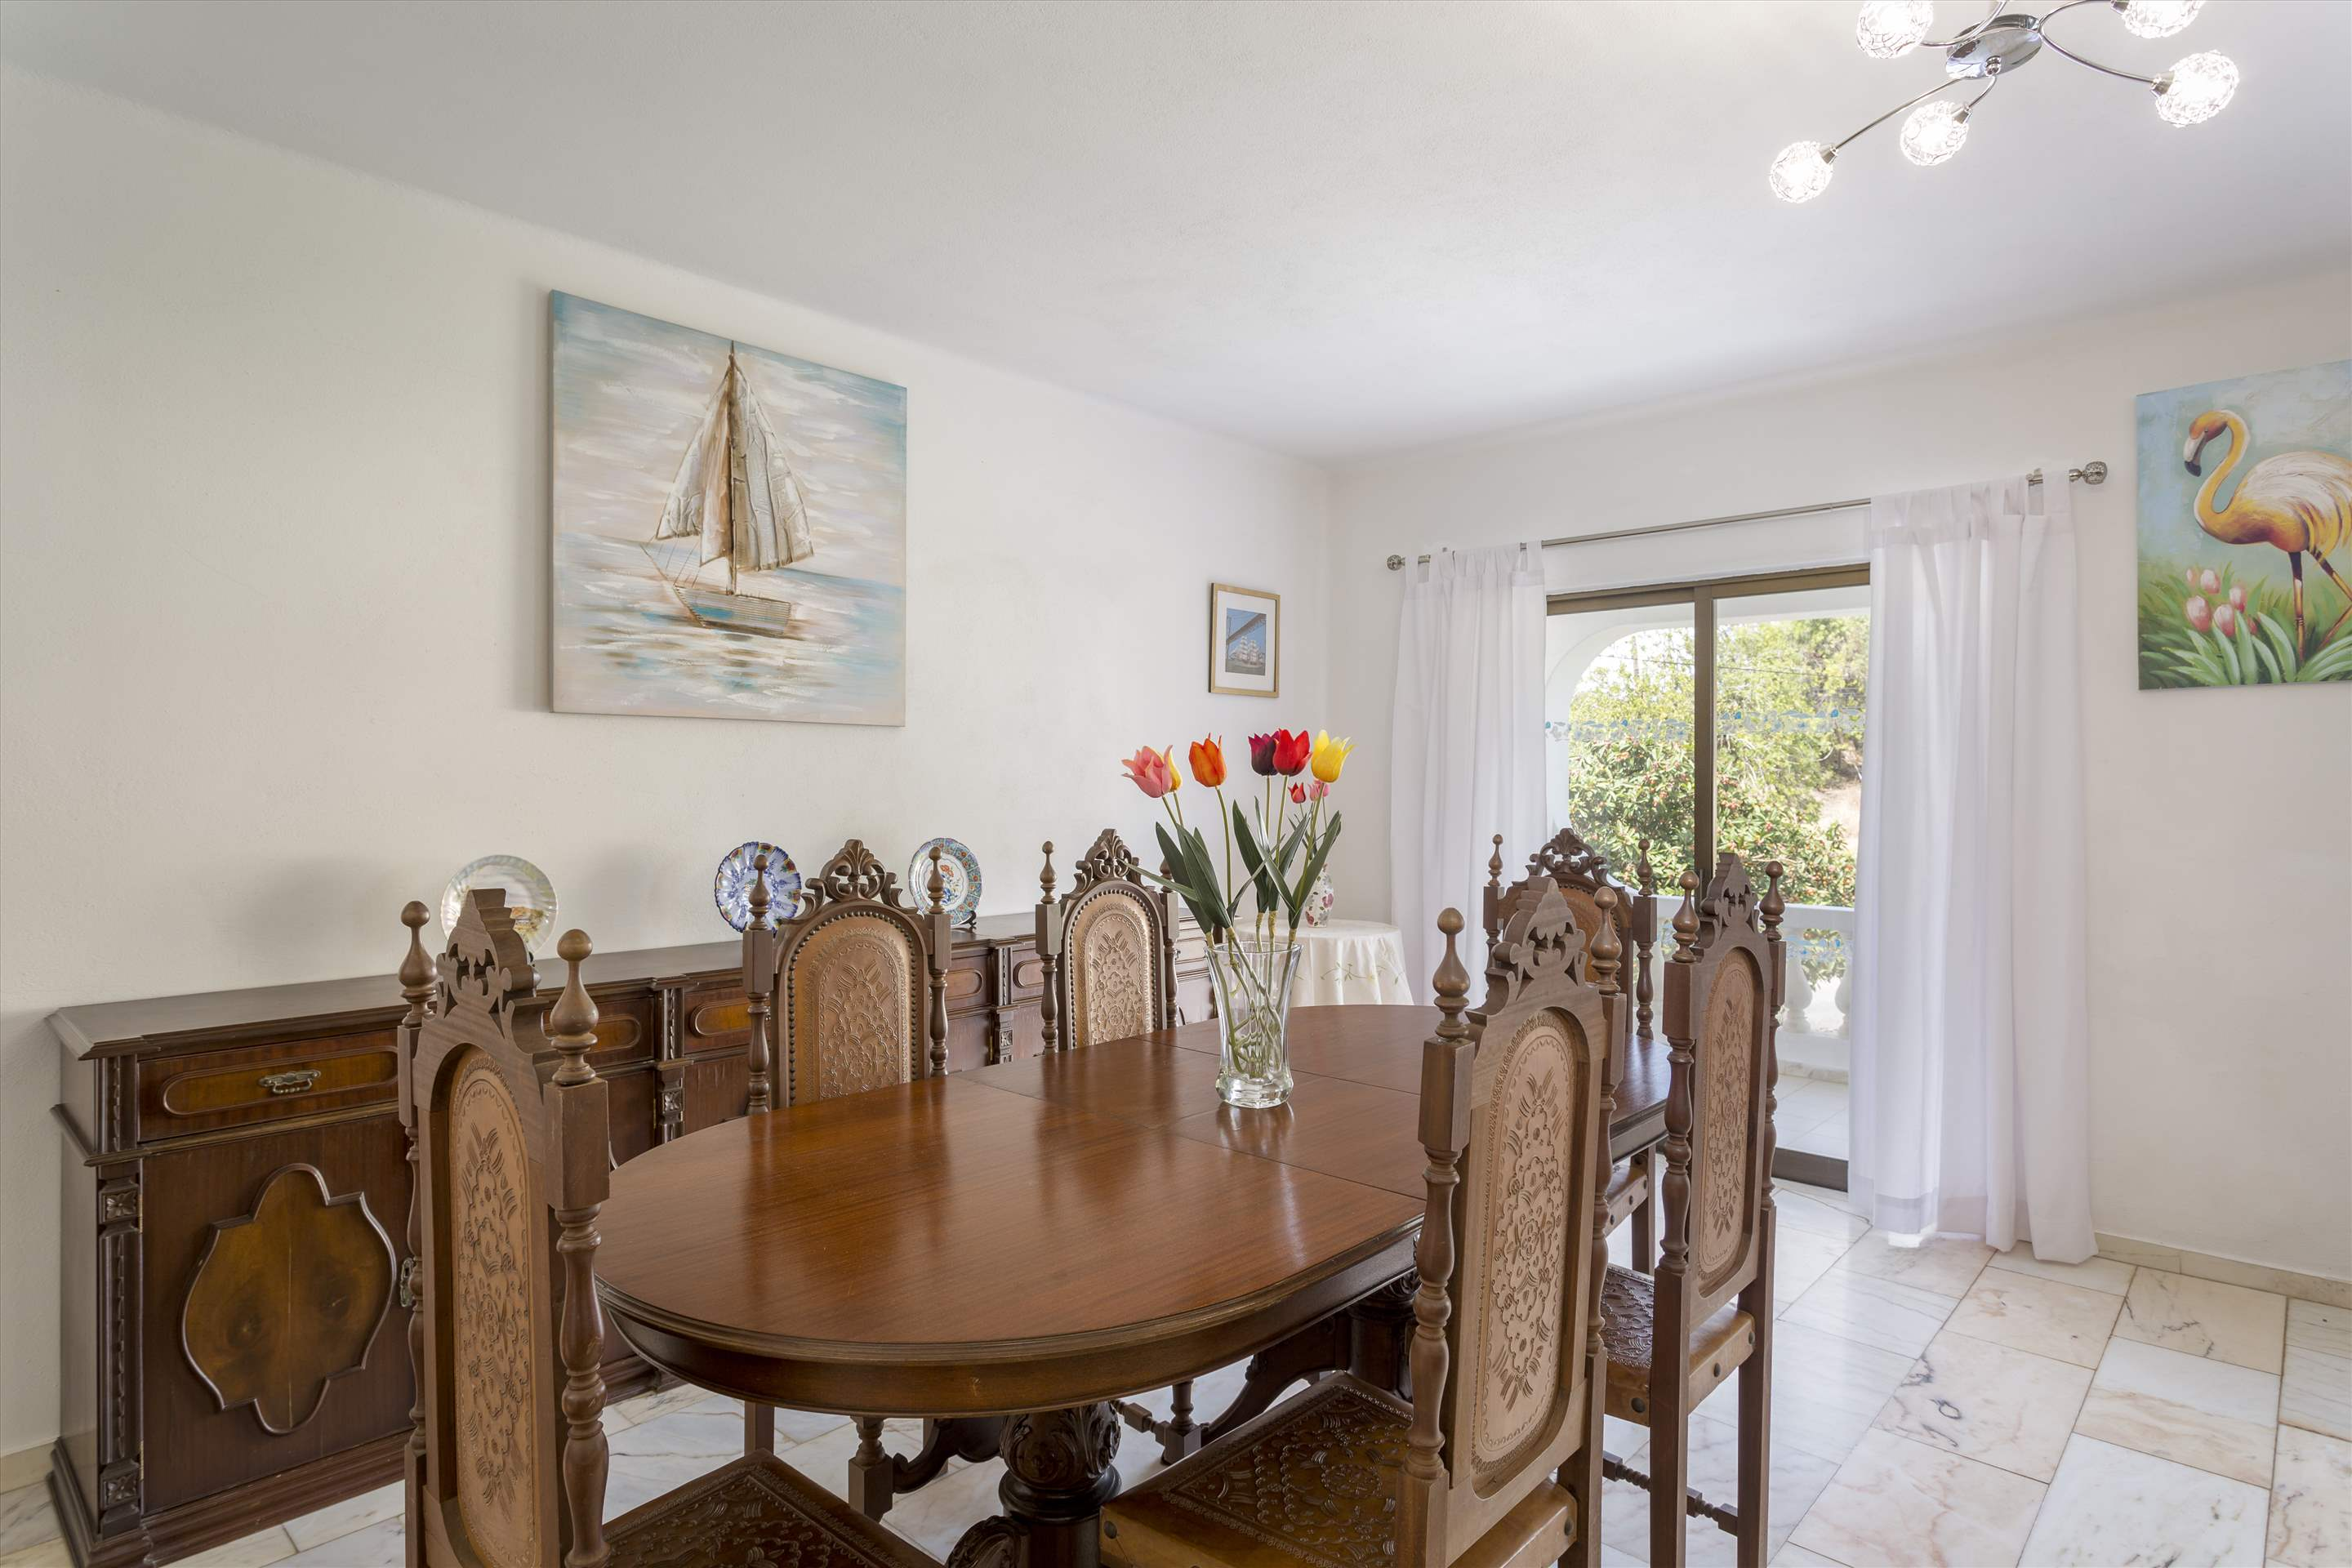 Villa Do Cerro, 3 bedroom villa in Carvoeiro Area, Algarve Photo #5